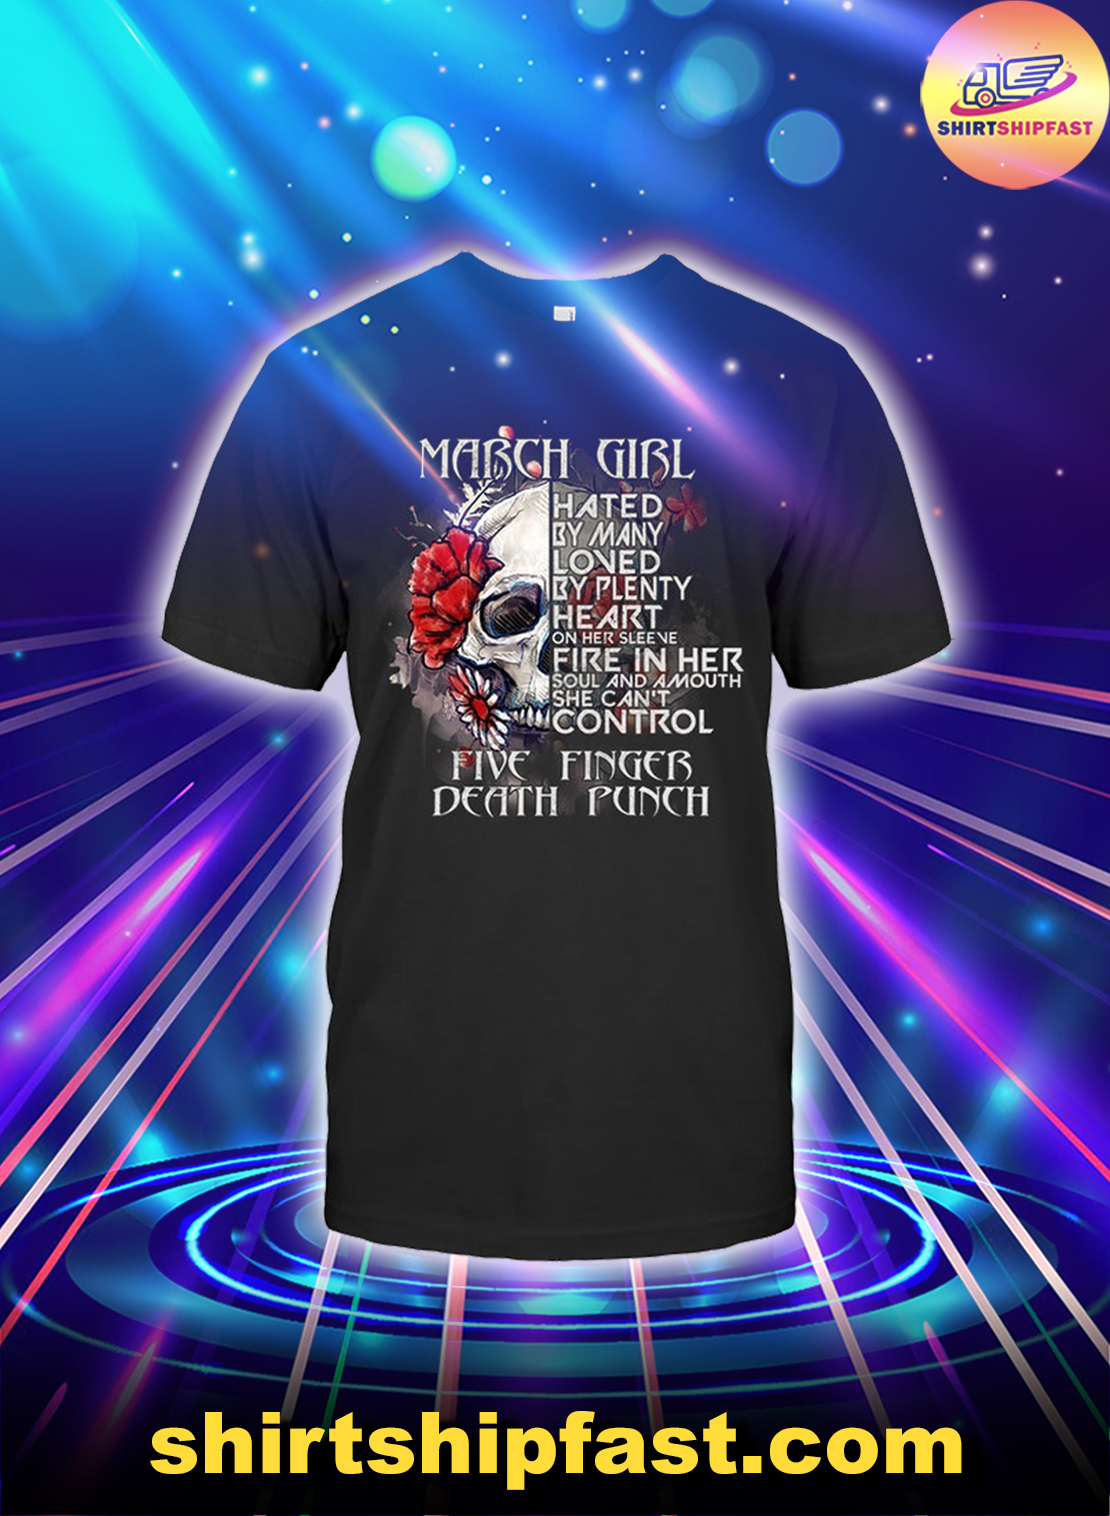 Skull March girl hated by many loved by plenty five finger death punch shirt